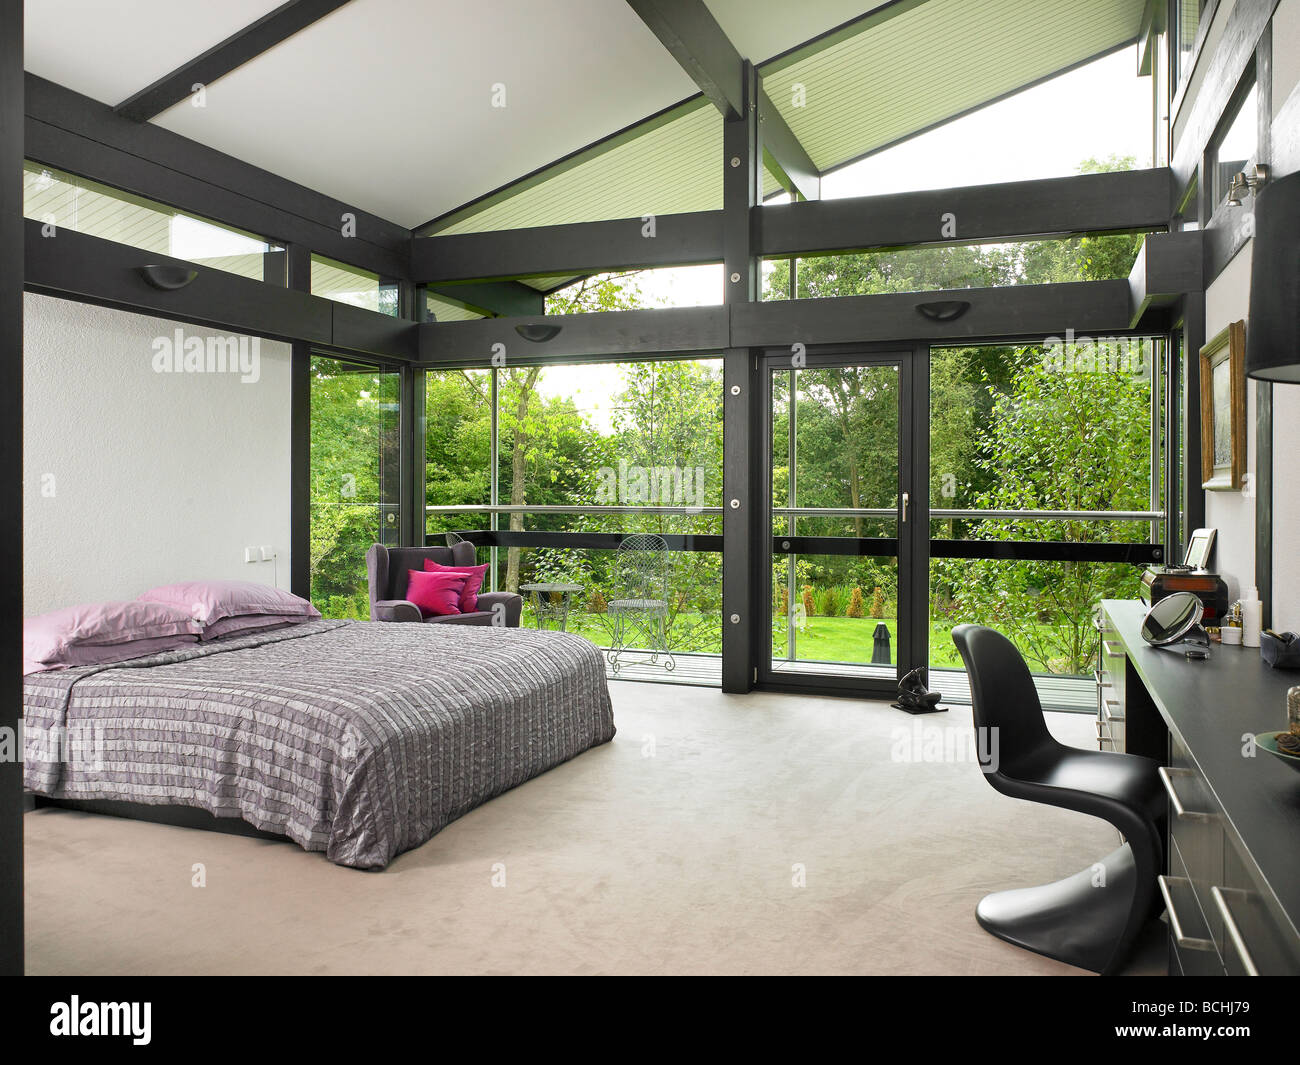 self build huf haus bedroom interior stock photo royalty free image 24973741 alamy. Black Bedroom Furniture Sets. Home Design Ideas